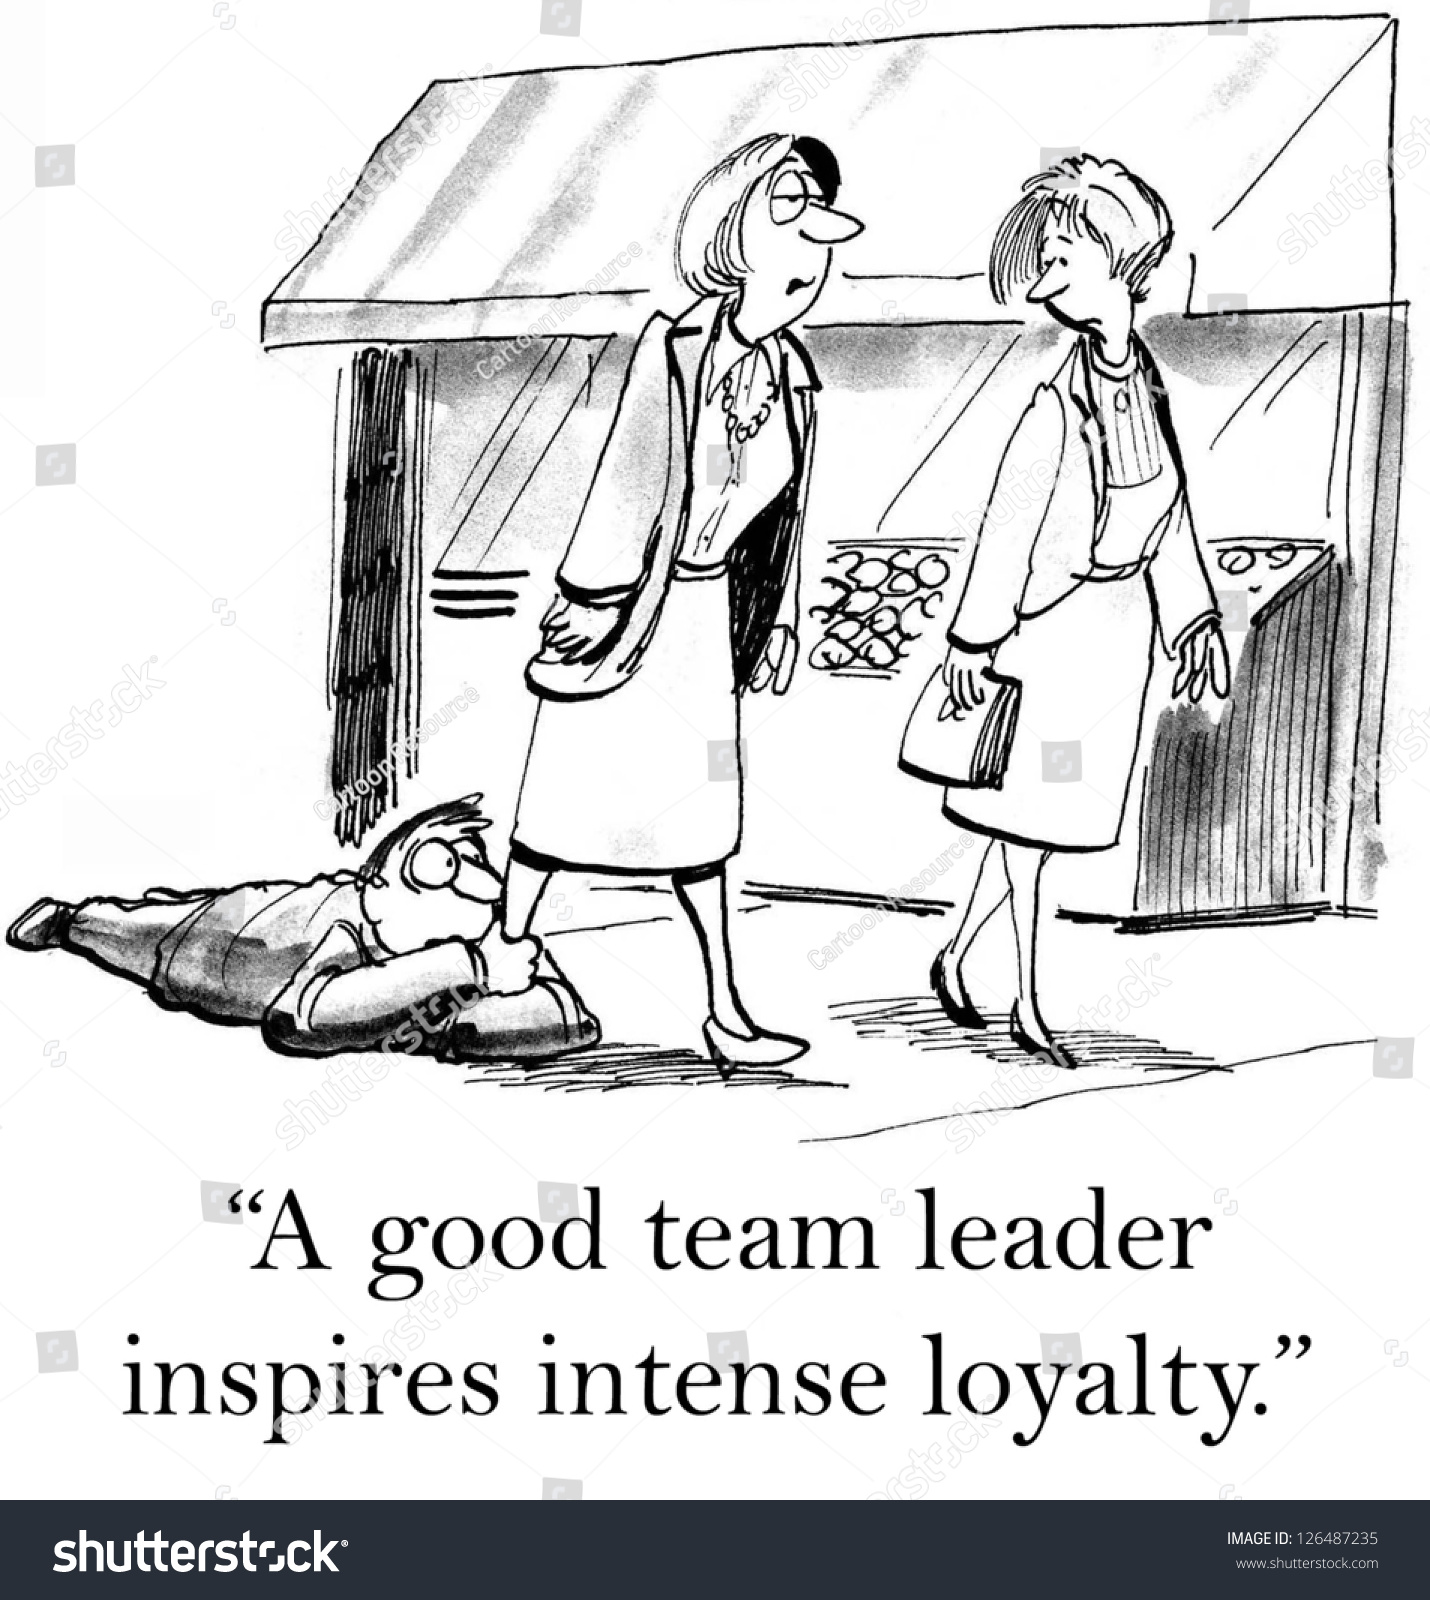 a good team leader inspires intense loyalty stock photo save to a lightbox